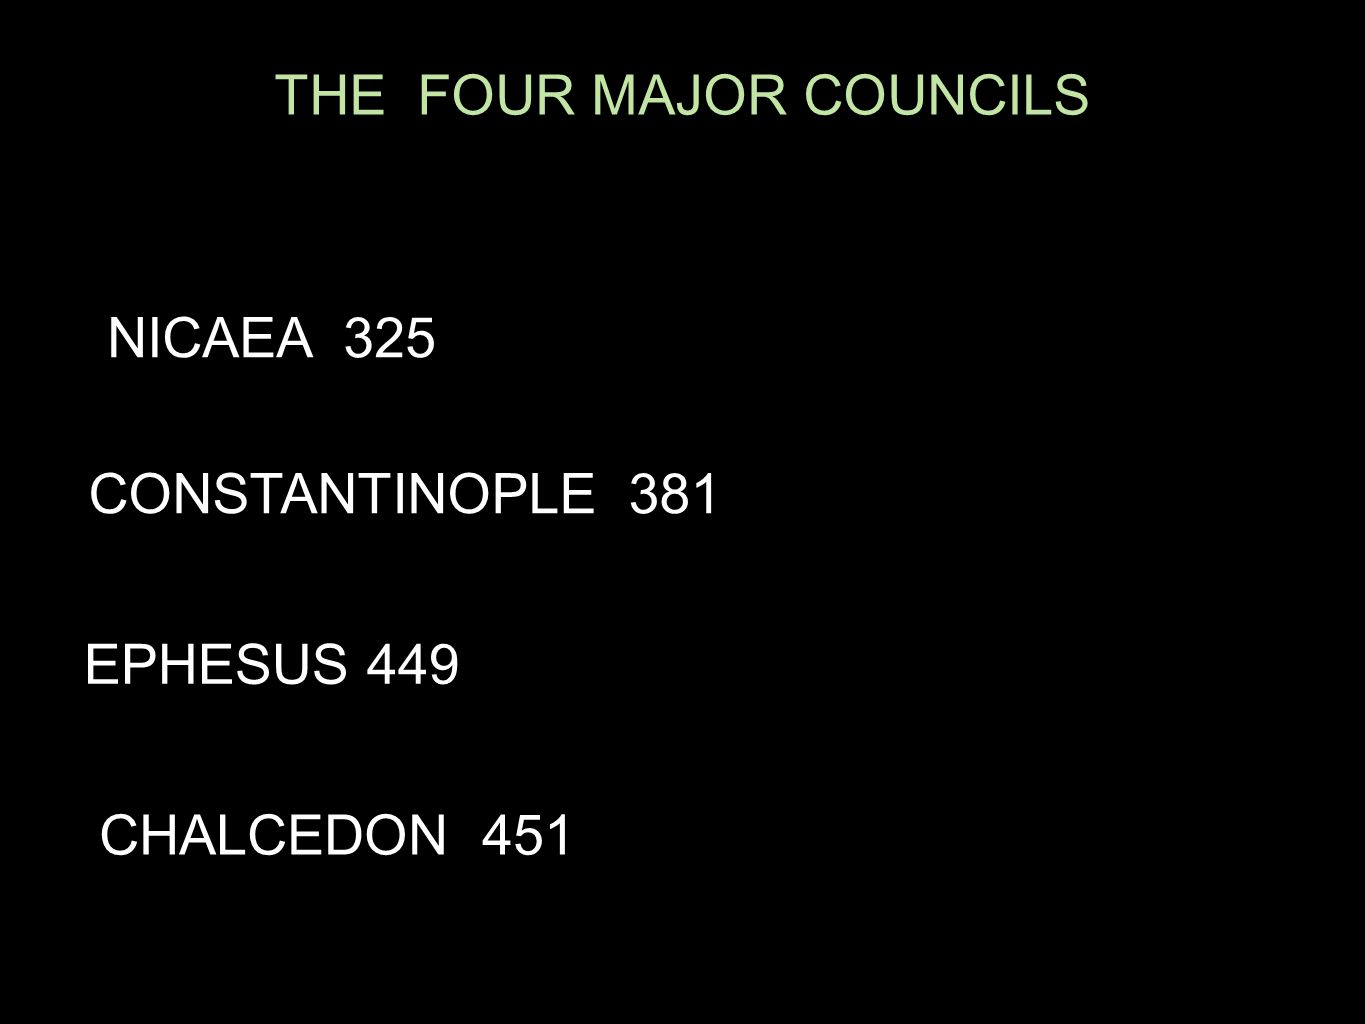 THE FOUR MAJOR COUNCILS NICAEA 325 CONSTANTINOPLE 381 EPHESUS 449 CHALCEDON 451